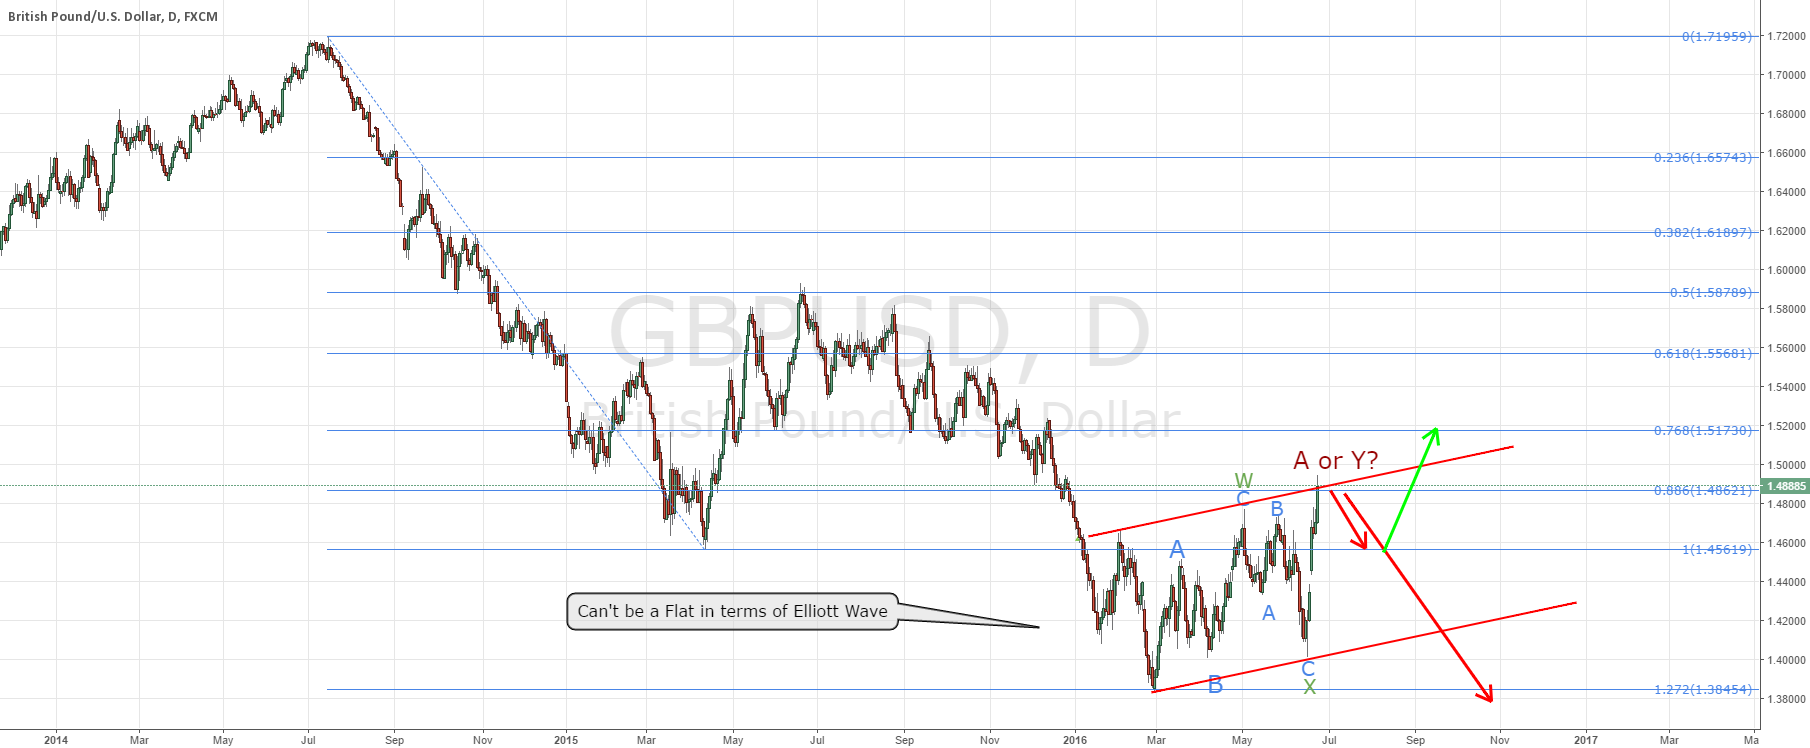 GBPUSD sell whether we vote yes or no